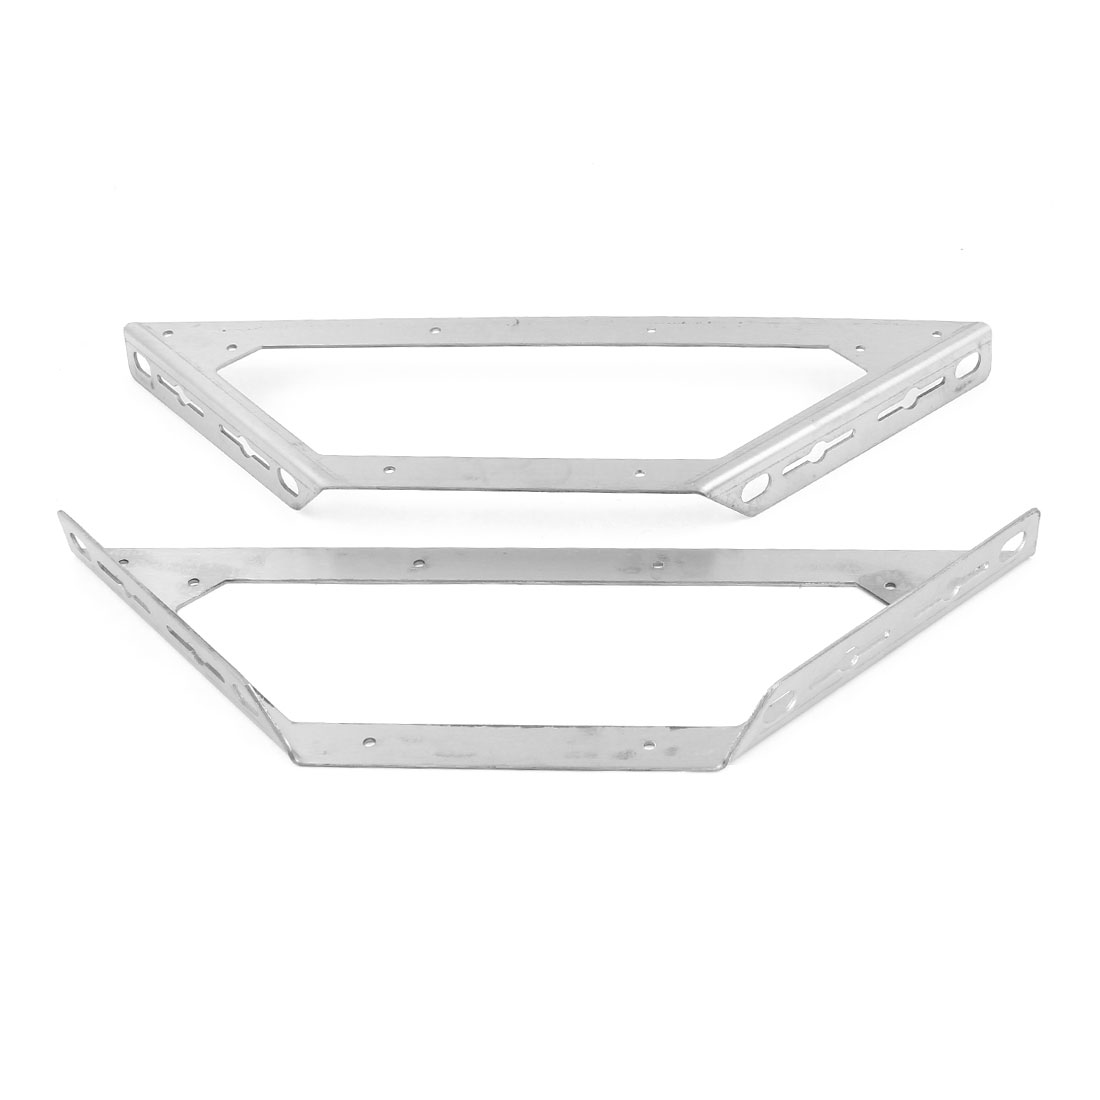 "2 Pcs Silver Tone Stainless Steel Support Shelf Bracket 390mm 15.3"" Length"